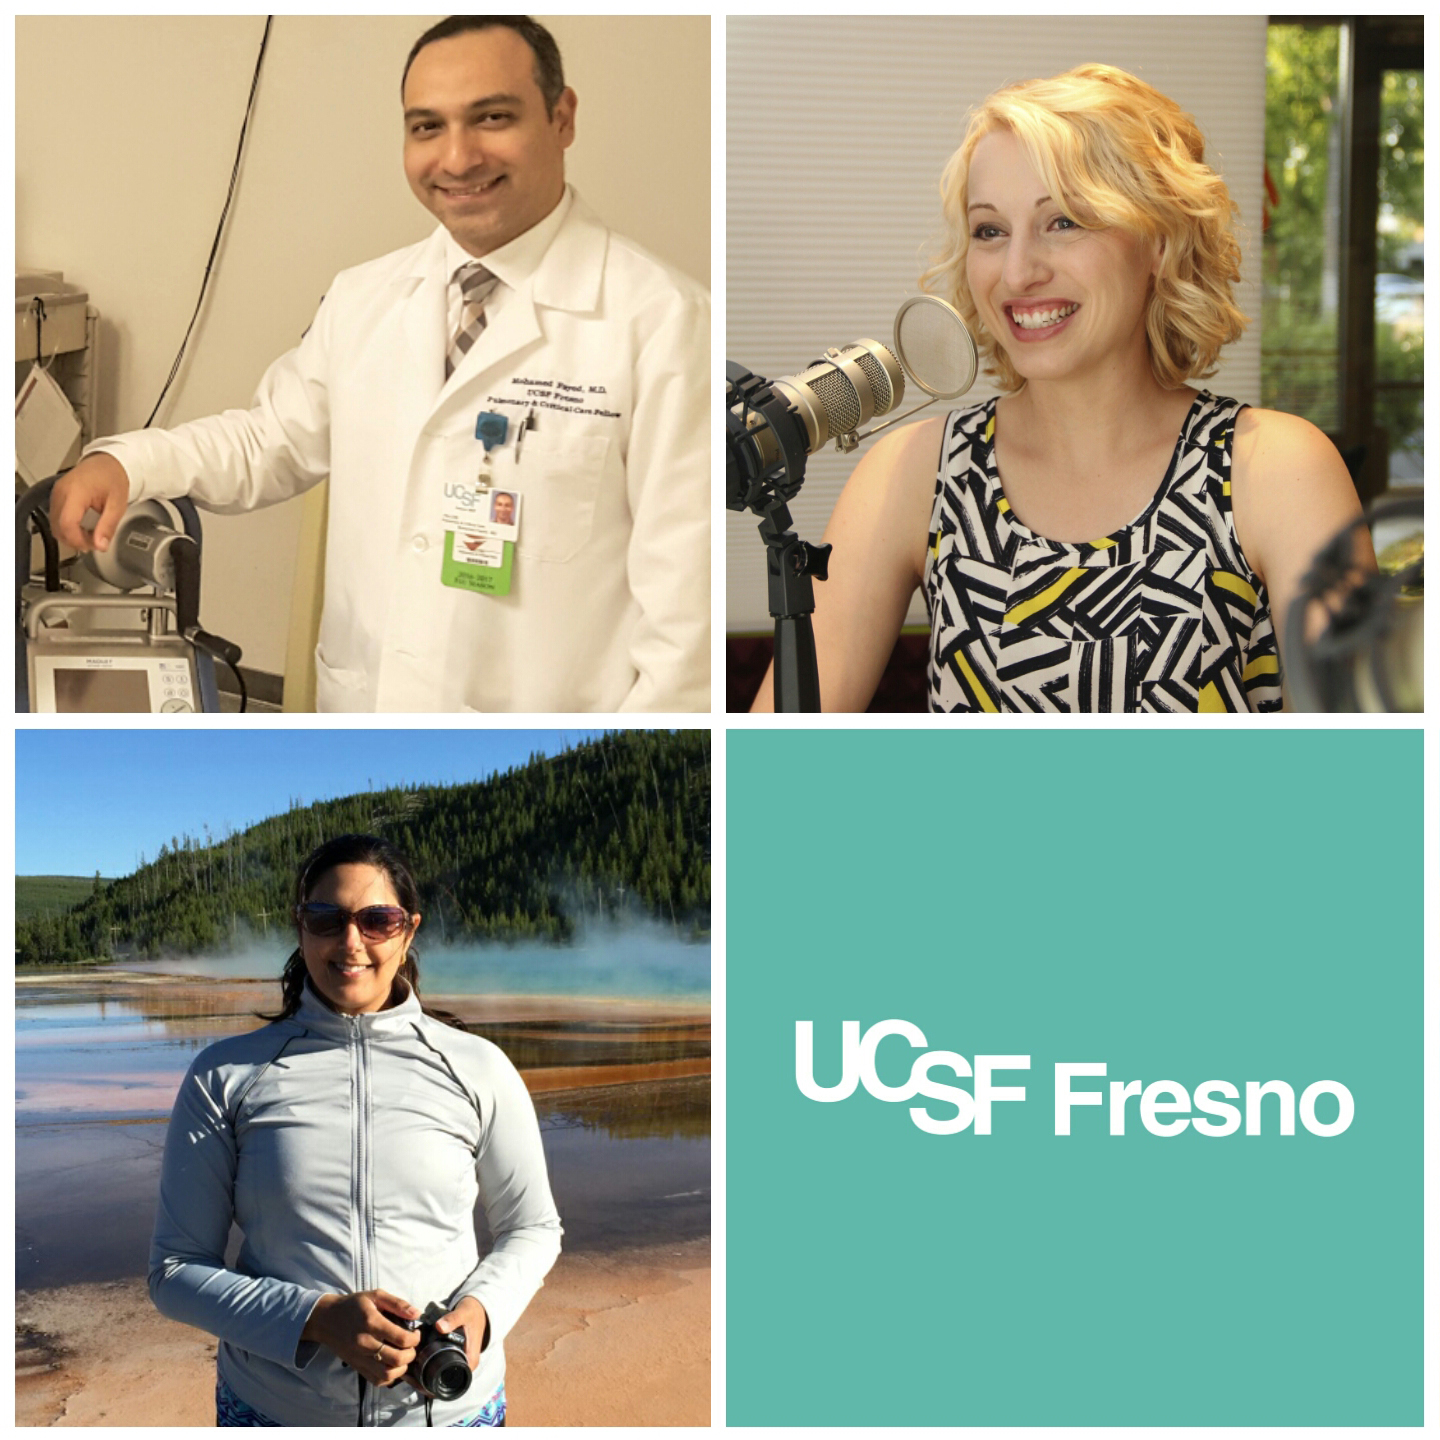 Top left: Dr. Fayed; bottom left: Dr. PandyaL; top right: Dr. Mason